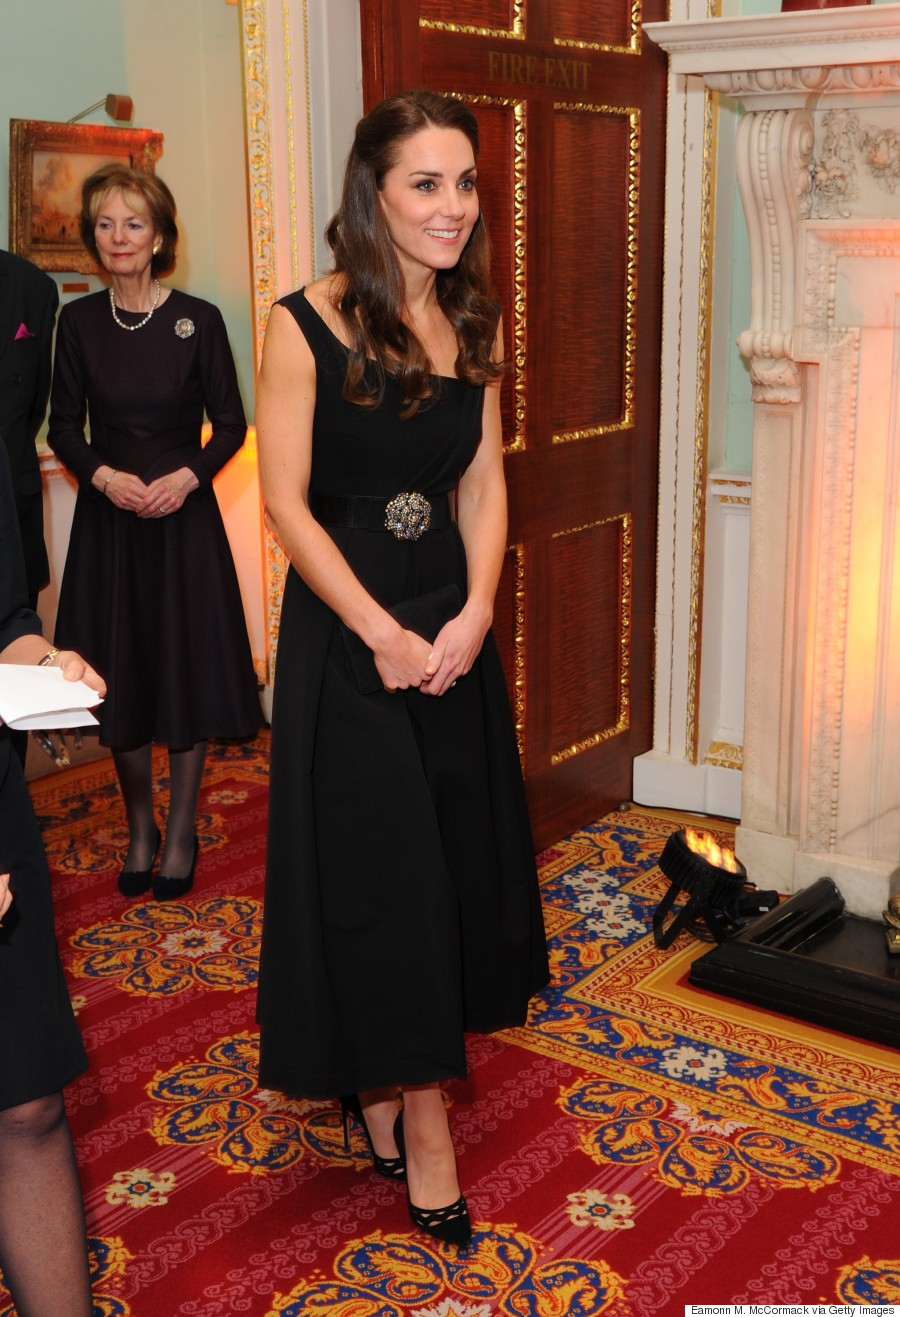 The Duchess Of Cambridge Wears A Dress We\'ve (Kind Of) Seen Before ...